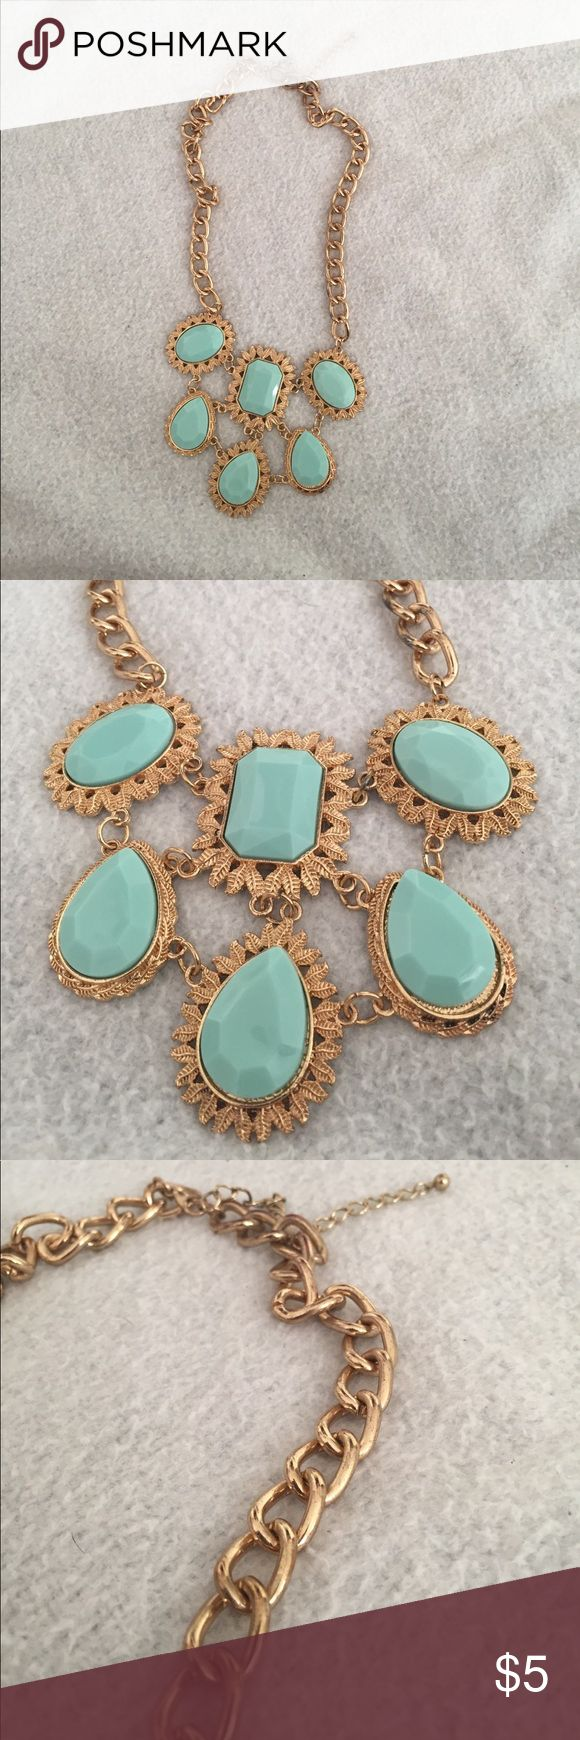 Mint Green Statement Necklace This is a lightly worn mint green gemstone shaped statement necklace. Jewelry Necklaces